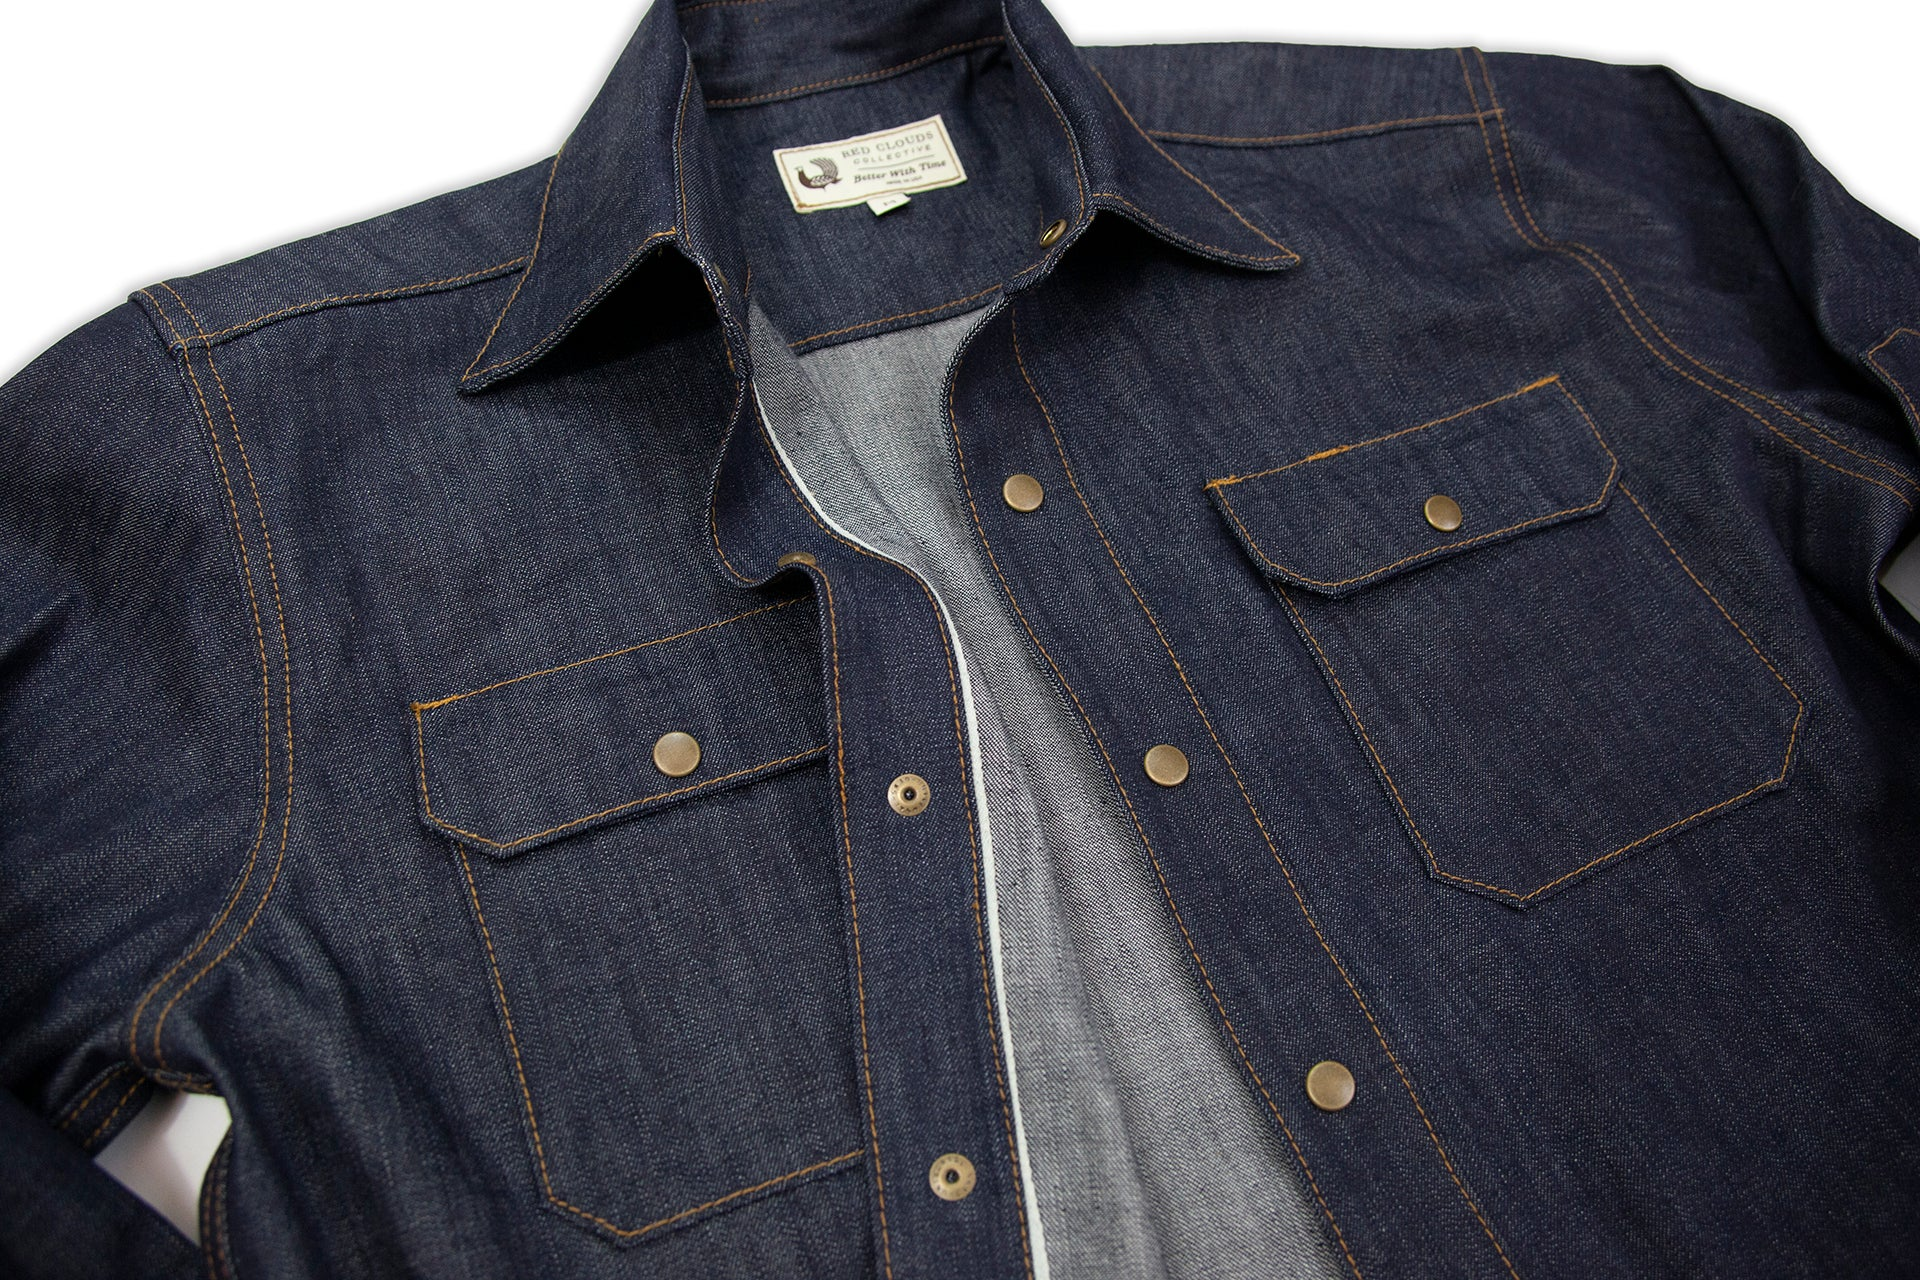 cfff8f79543 Witham Work Shirt - Cone Mills Selvage Denim - Red Clouds Collective ...